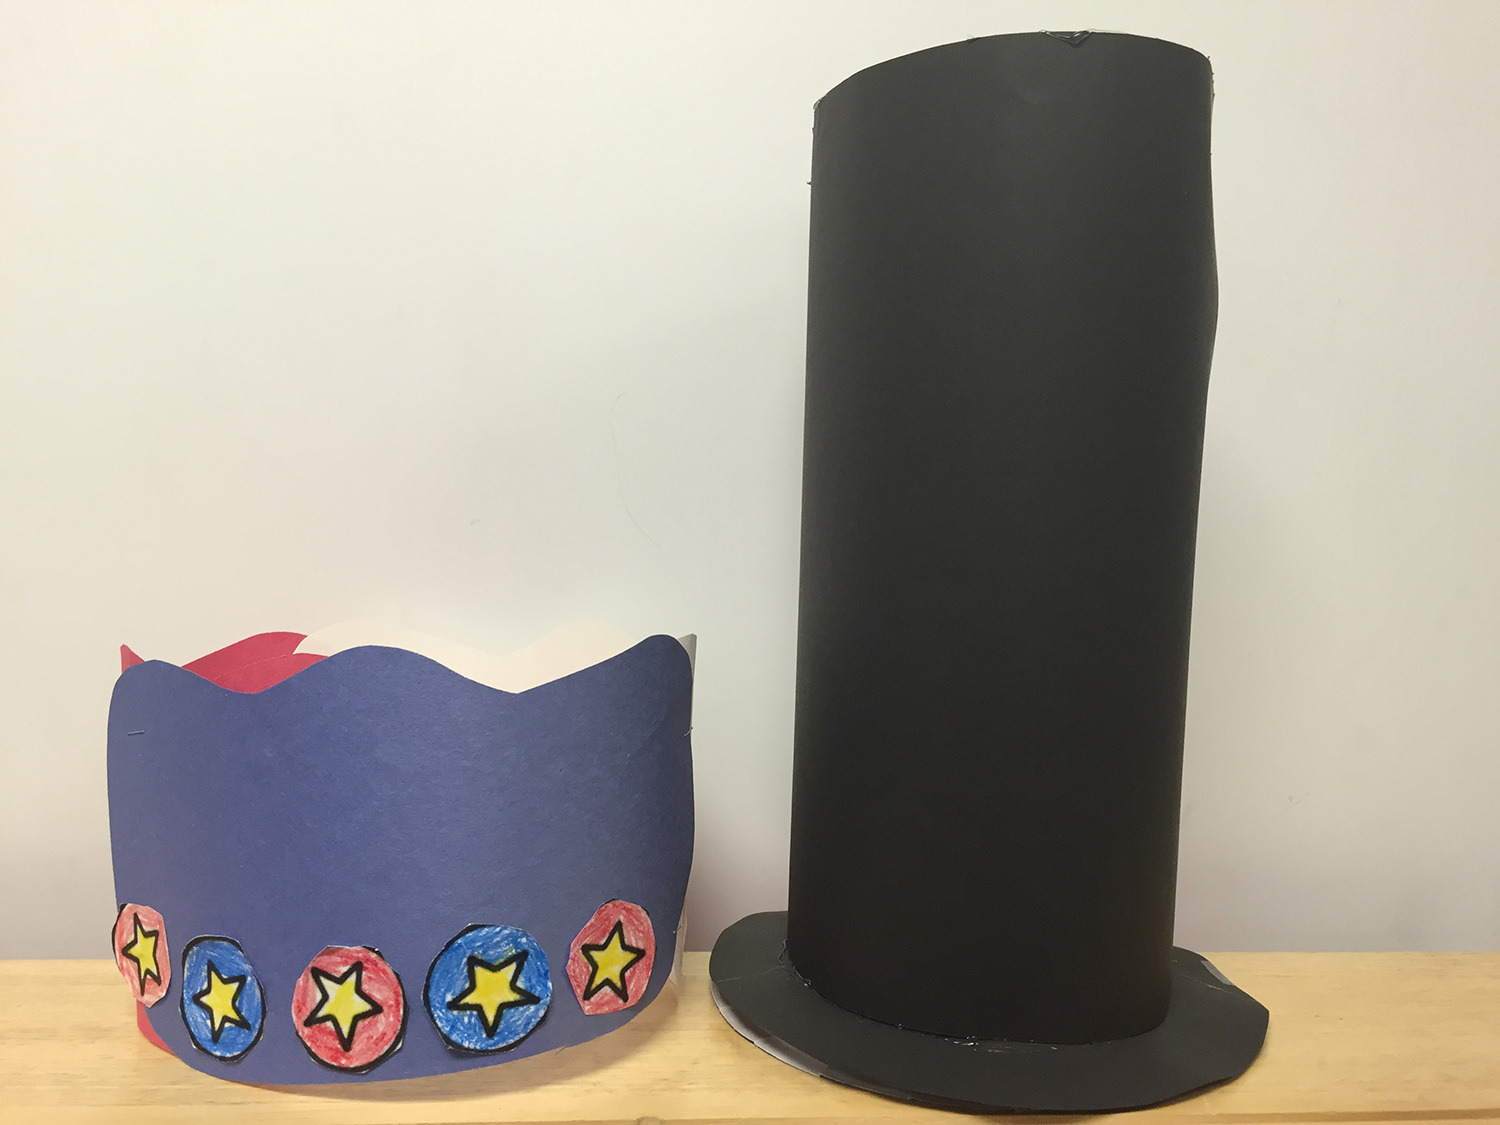 Paper tricorn and stovepipe hats